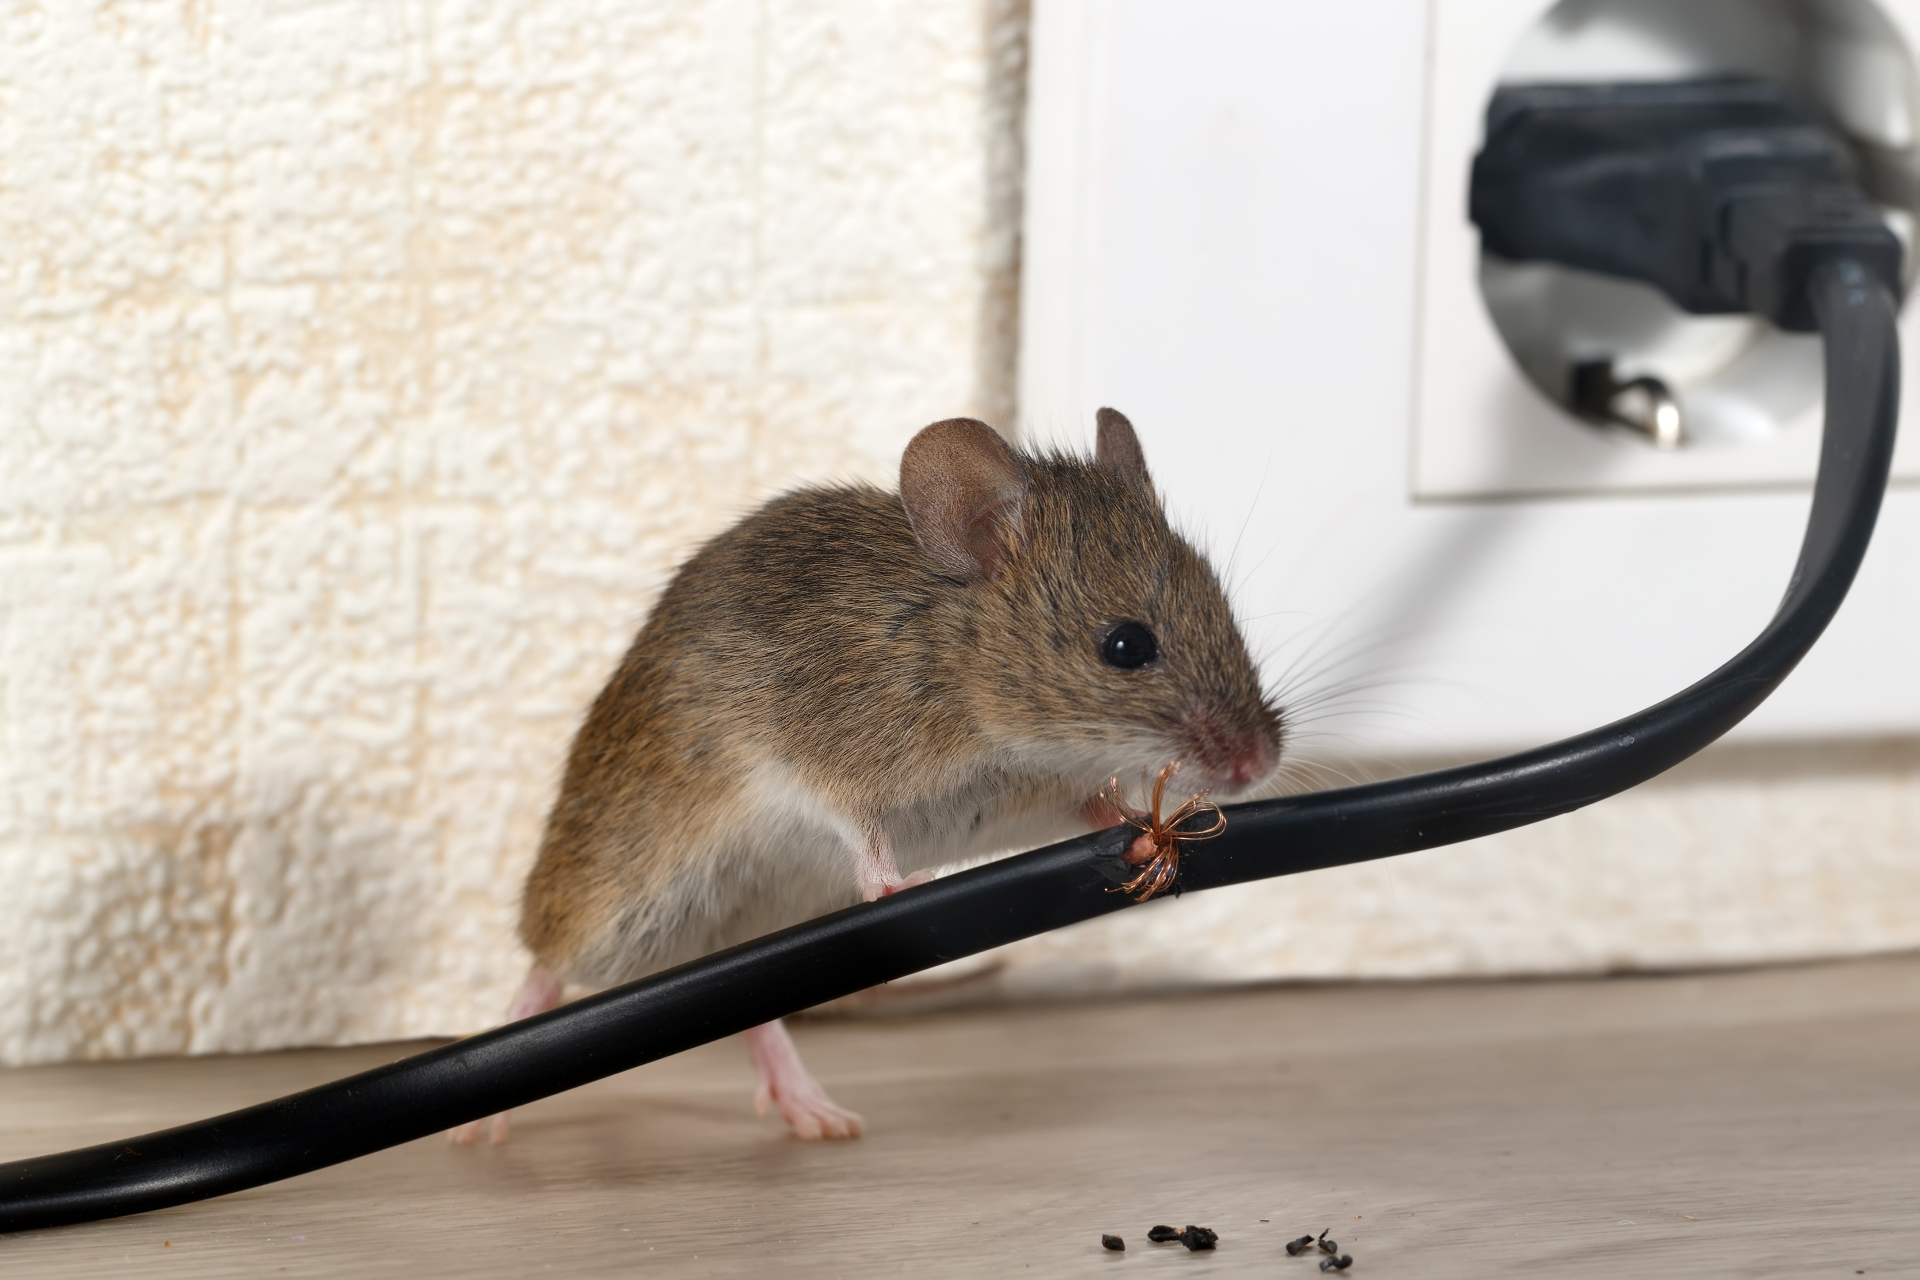 Mice Infestation, Pest Control in Camden Town, NW1. Call Now 020 8166 9746